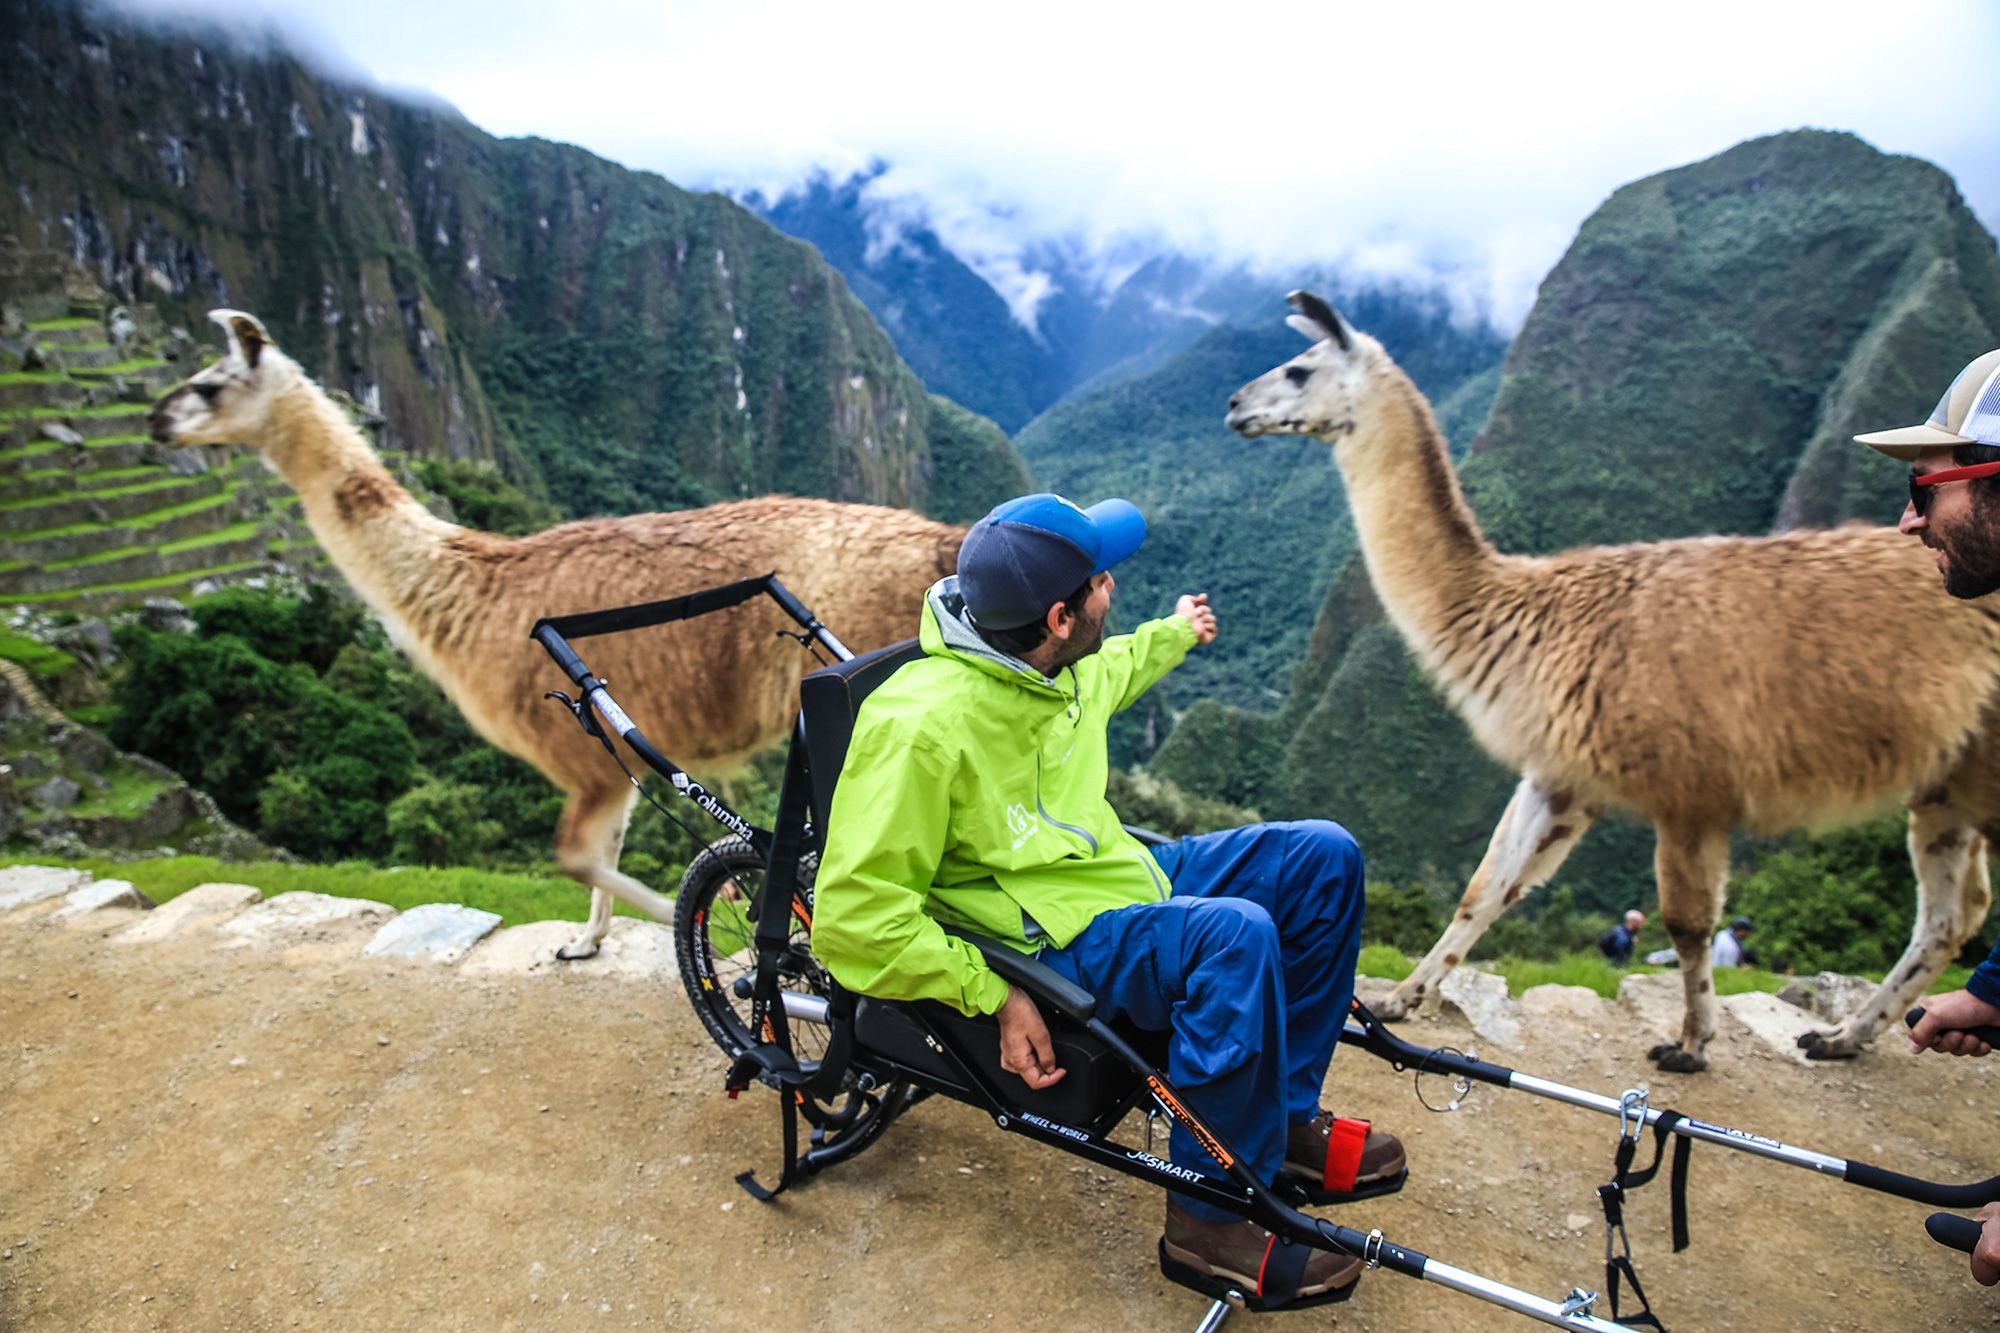 Person in special wheelchair designed for Machu Picchu visitors with limited mobility